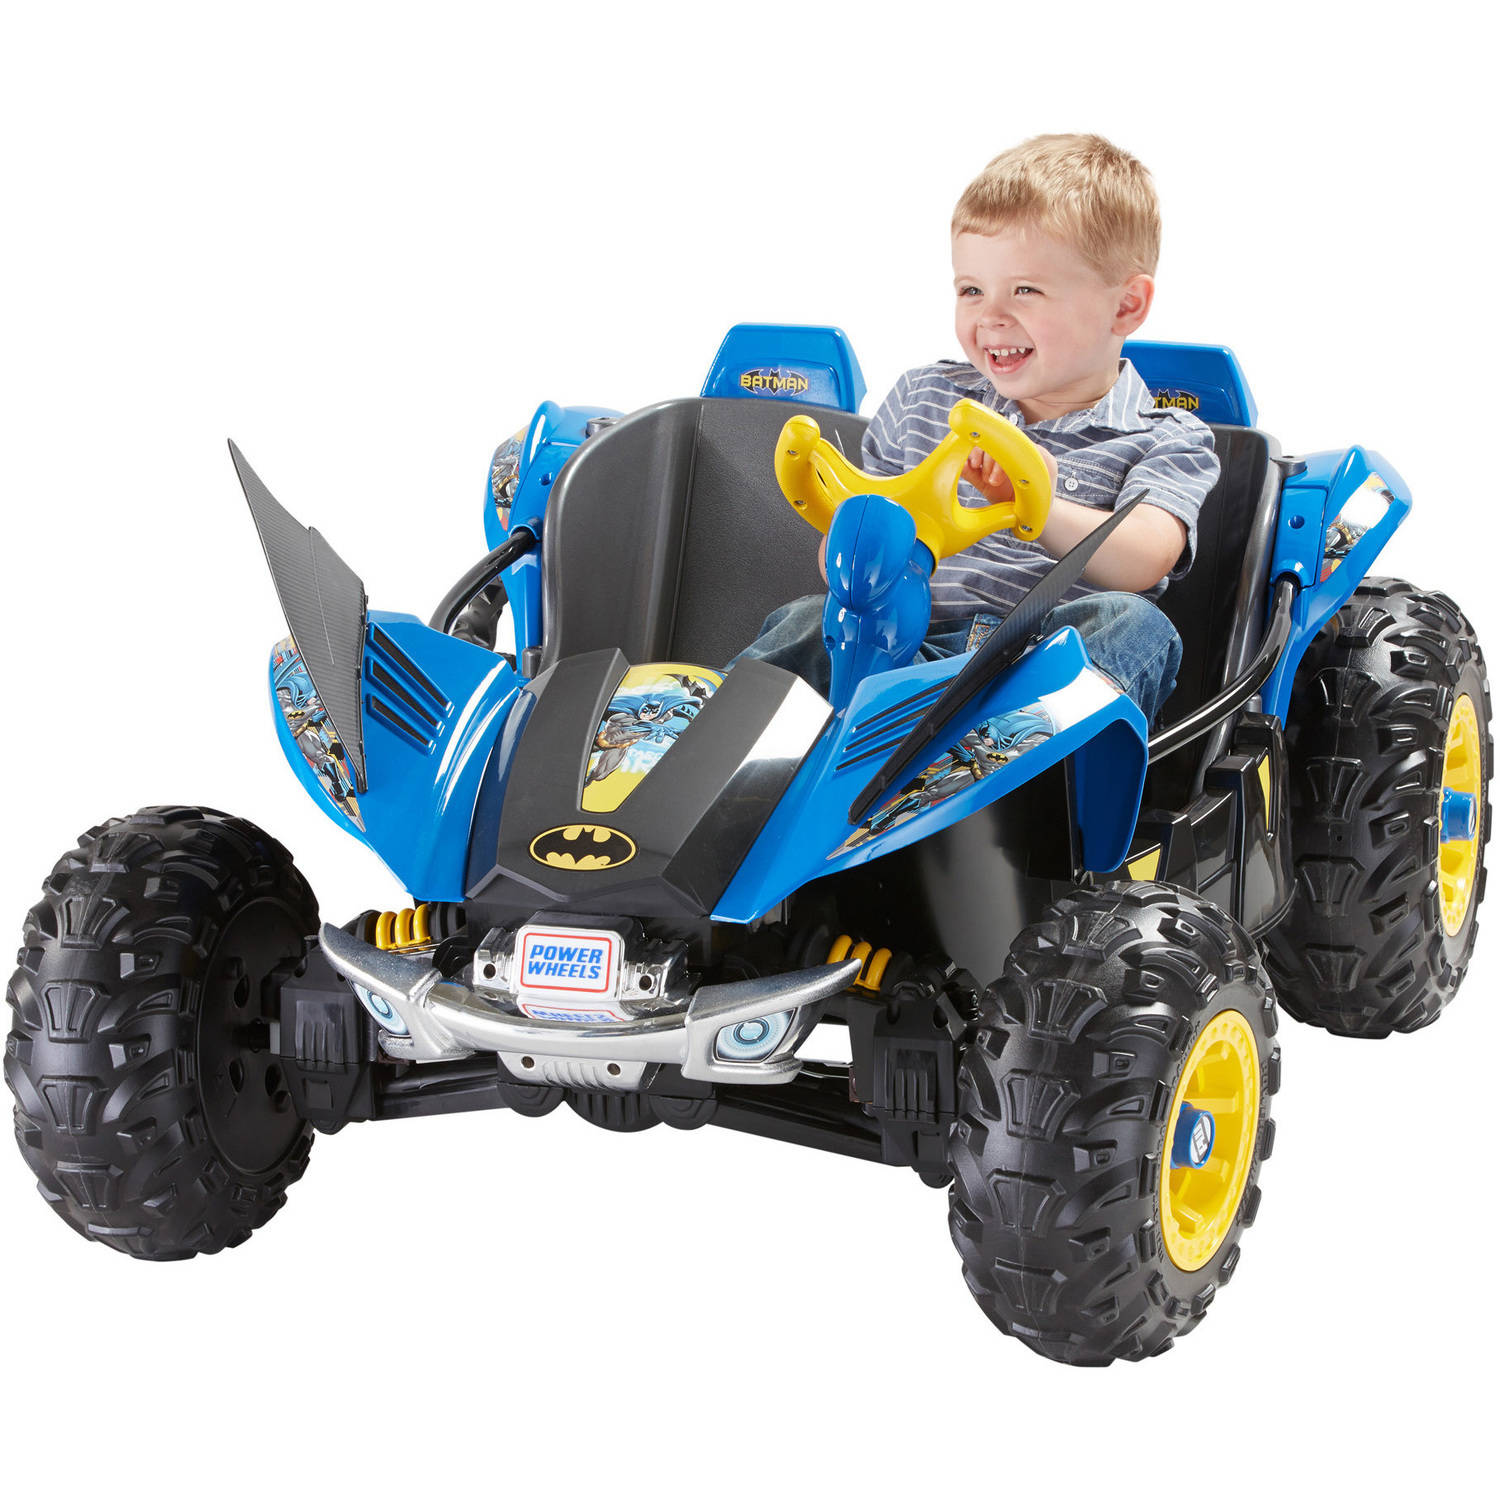 Fisher-Price Power Wheels Batman Dune Racer Battery-Powered Ride-On